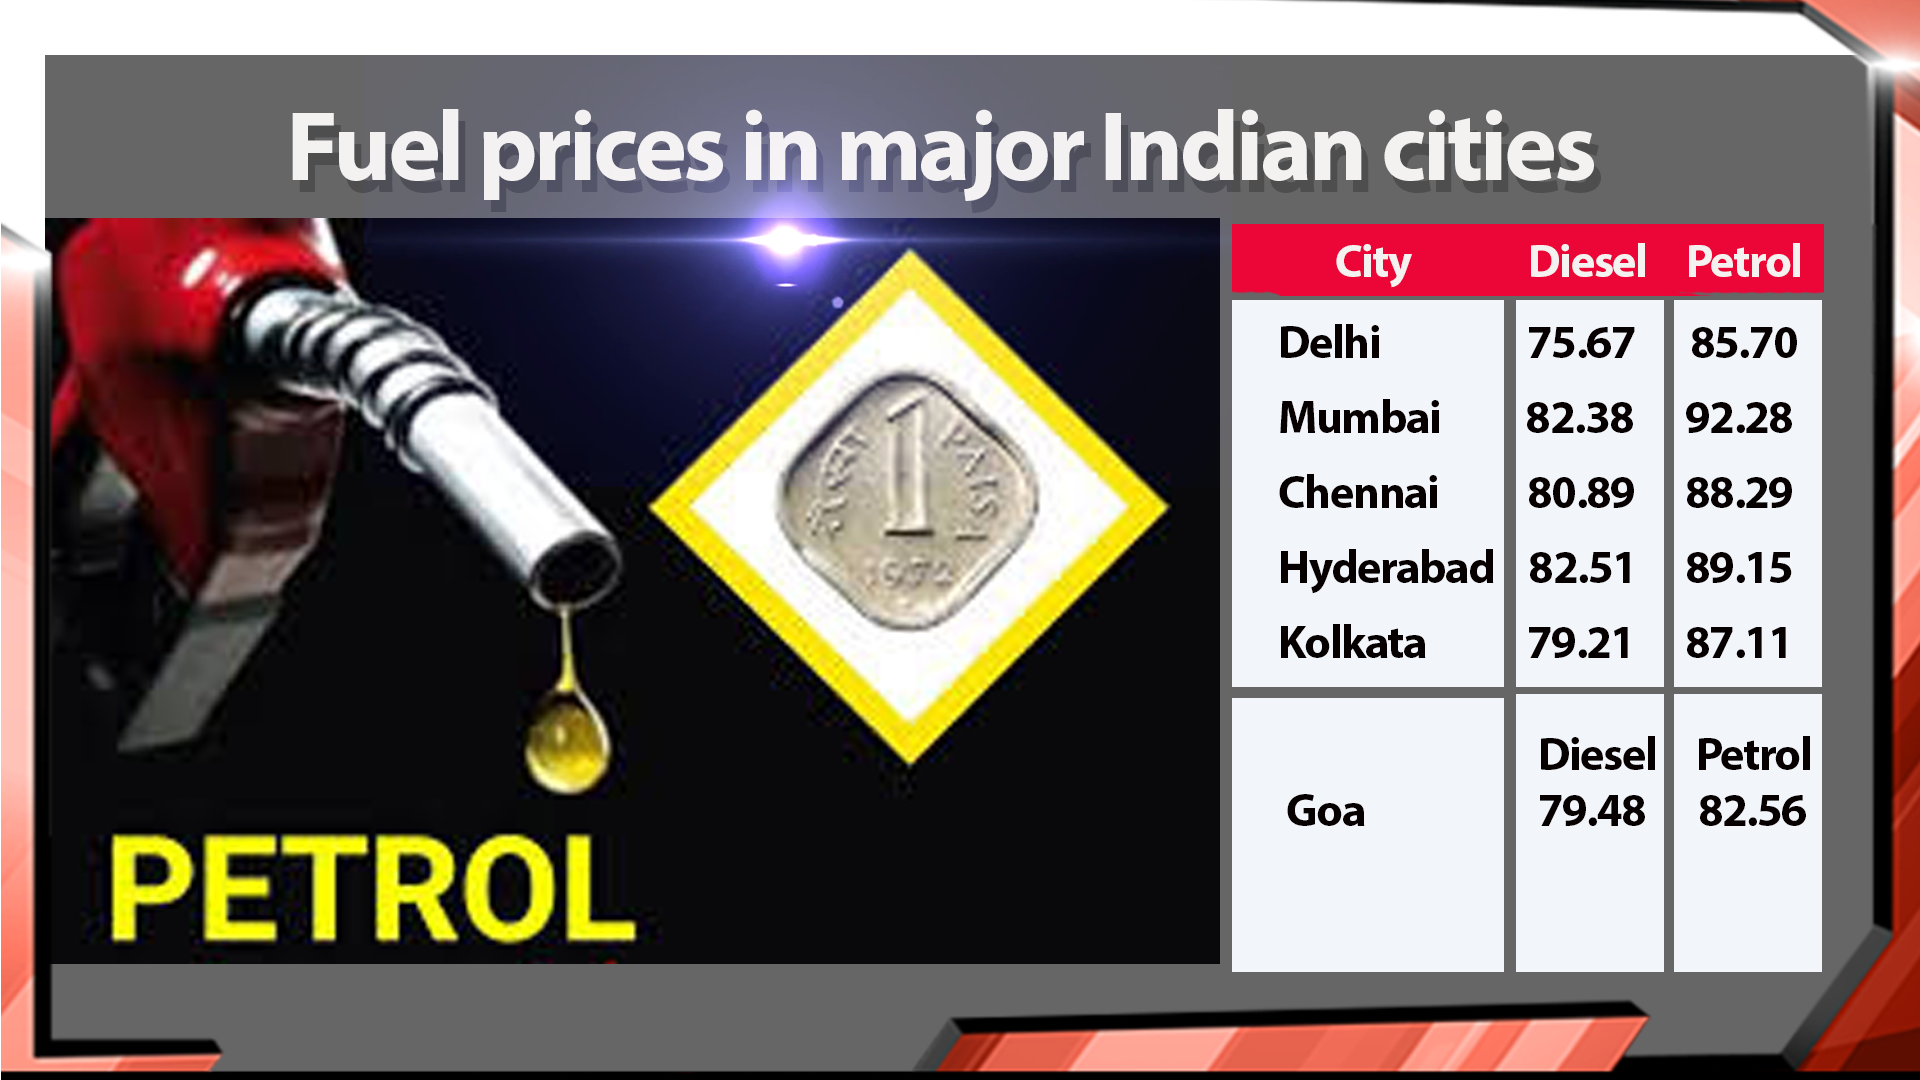 Fuel prices keep rising inexorably after a major producer cuts production